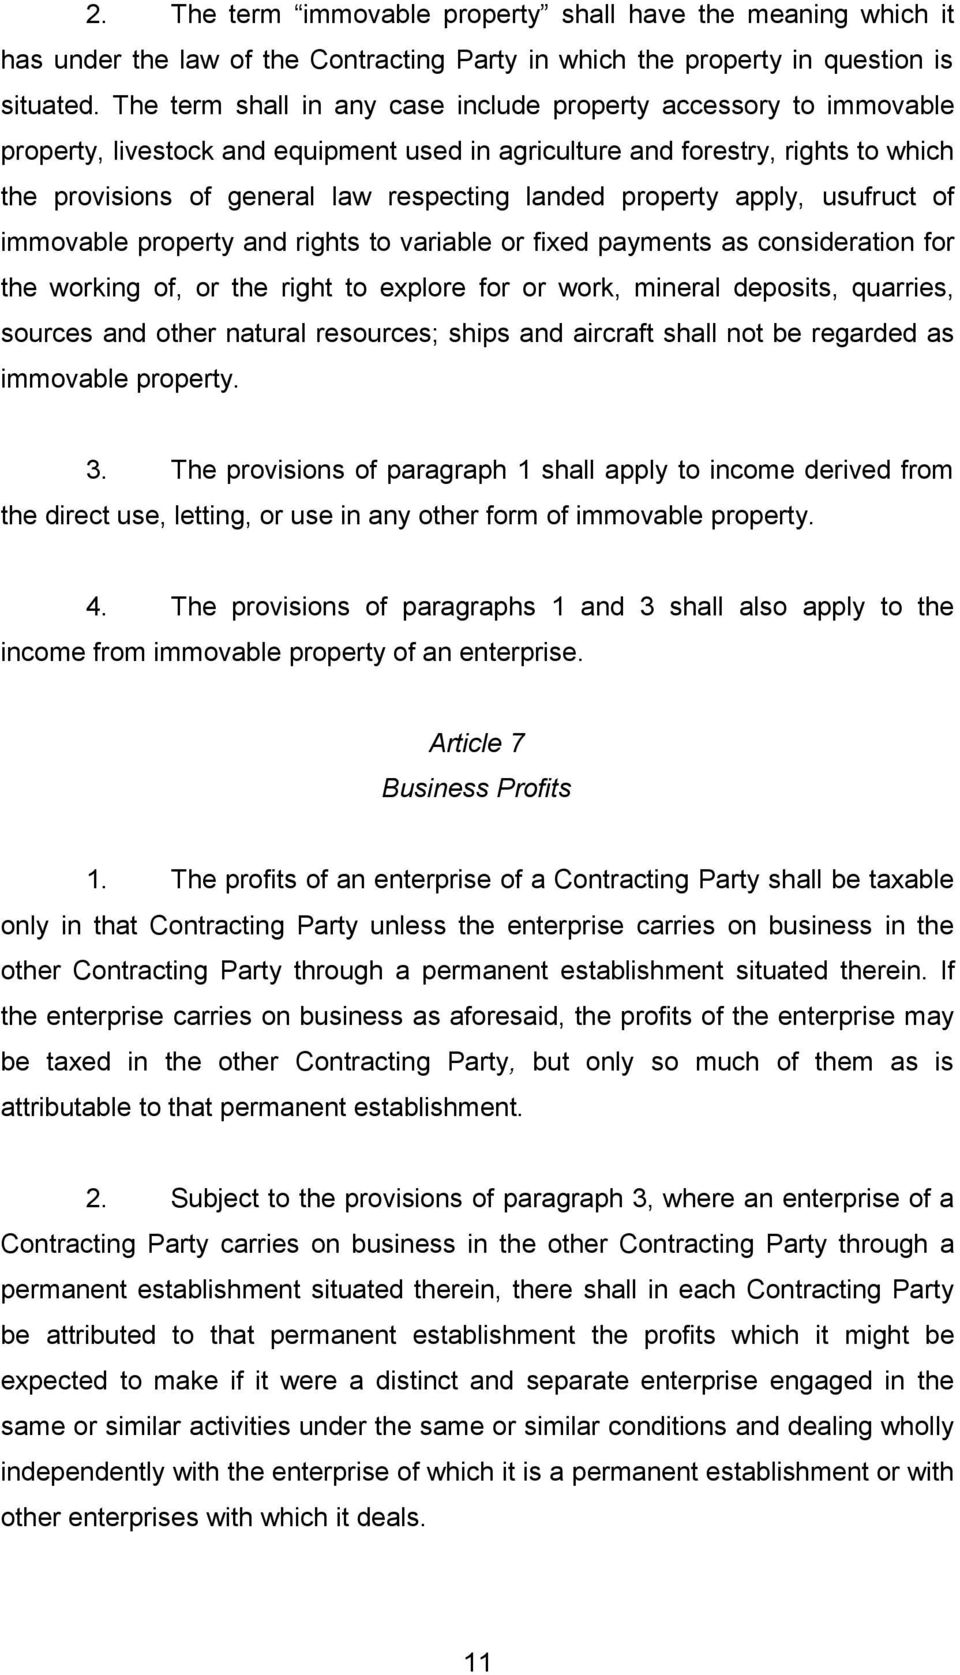 property apply, usufruct of immovable property and rights to variable or fixed payments as consideration for the working of, or the right to explore for or work, mineral deposits, quarries, sources